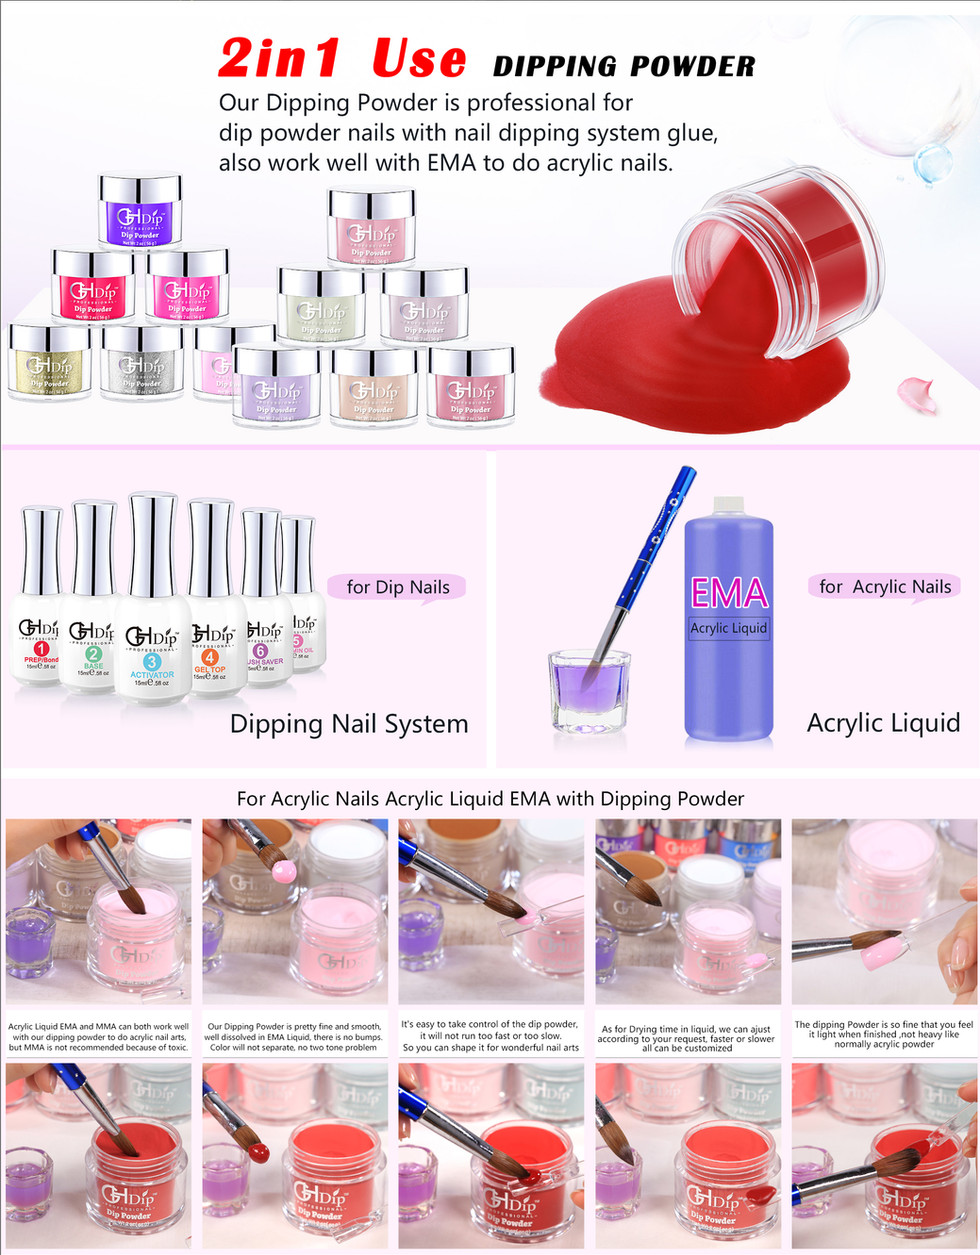 2in1 use Dipping Powder for dip nails and acrylic nails